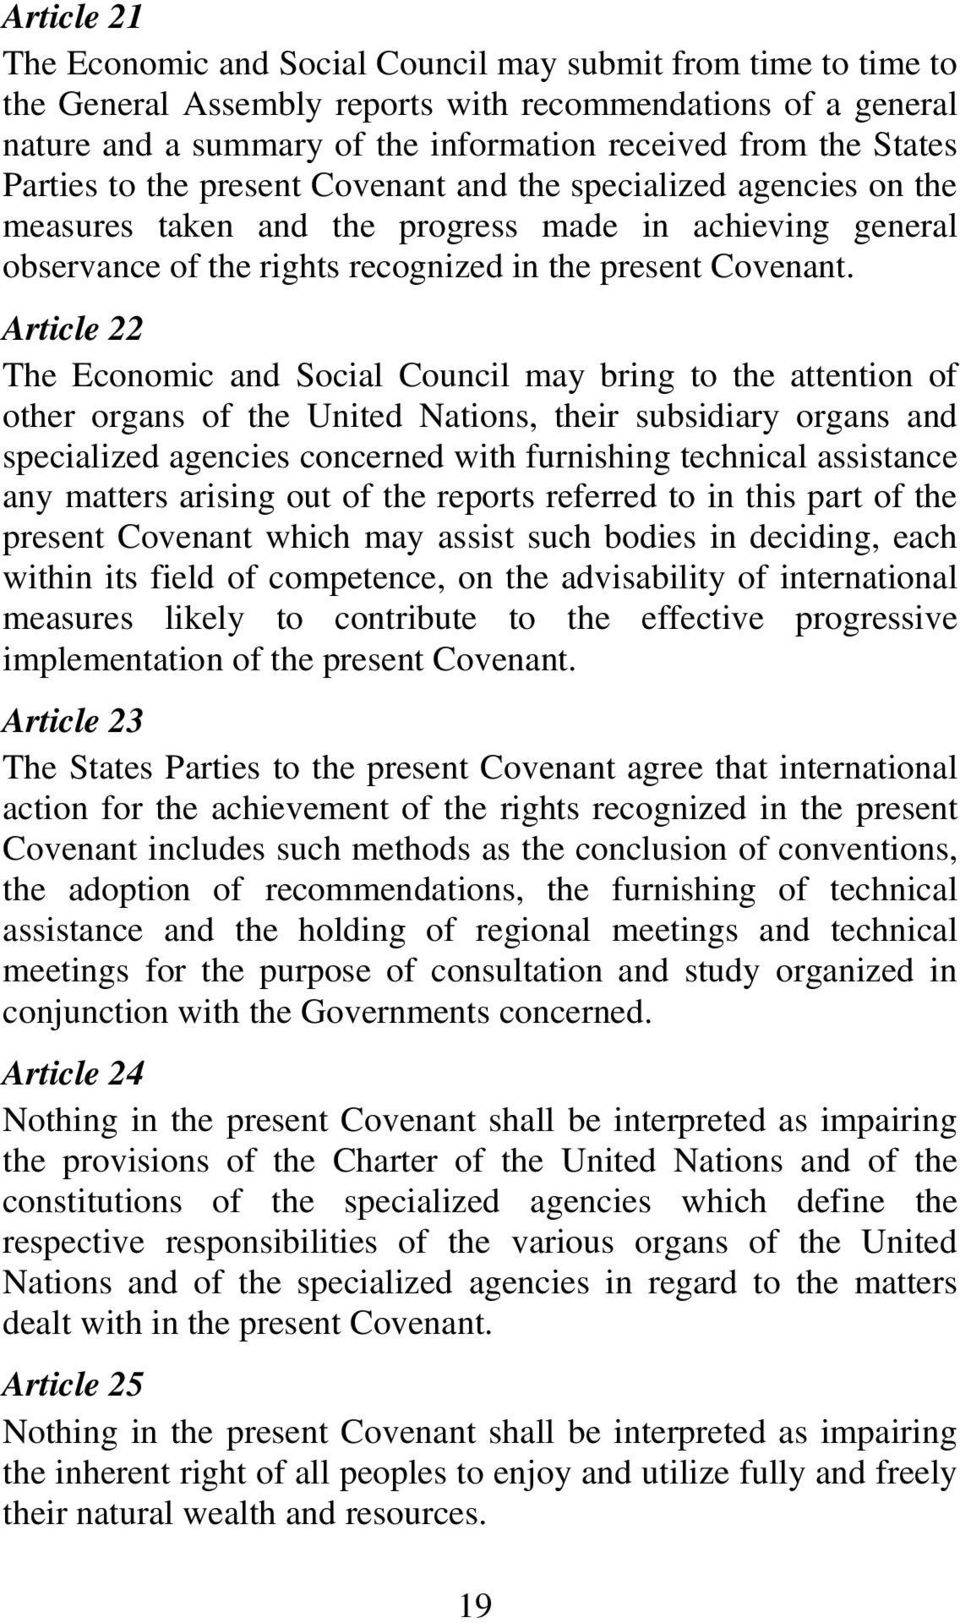 Article 22 The Economic and Social Council may bring to the attention of other organs of the United Nations, their subsidiary organs and specialized agencies concerned with furnishing technical